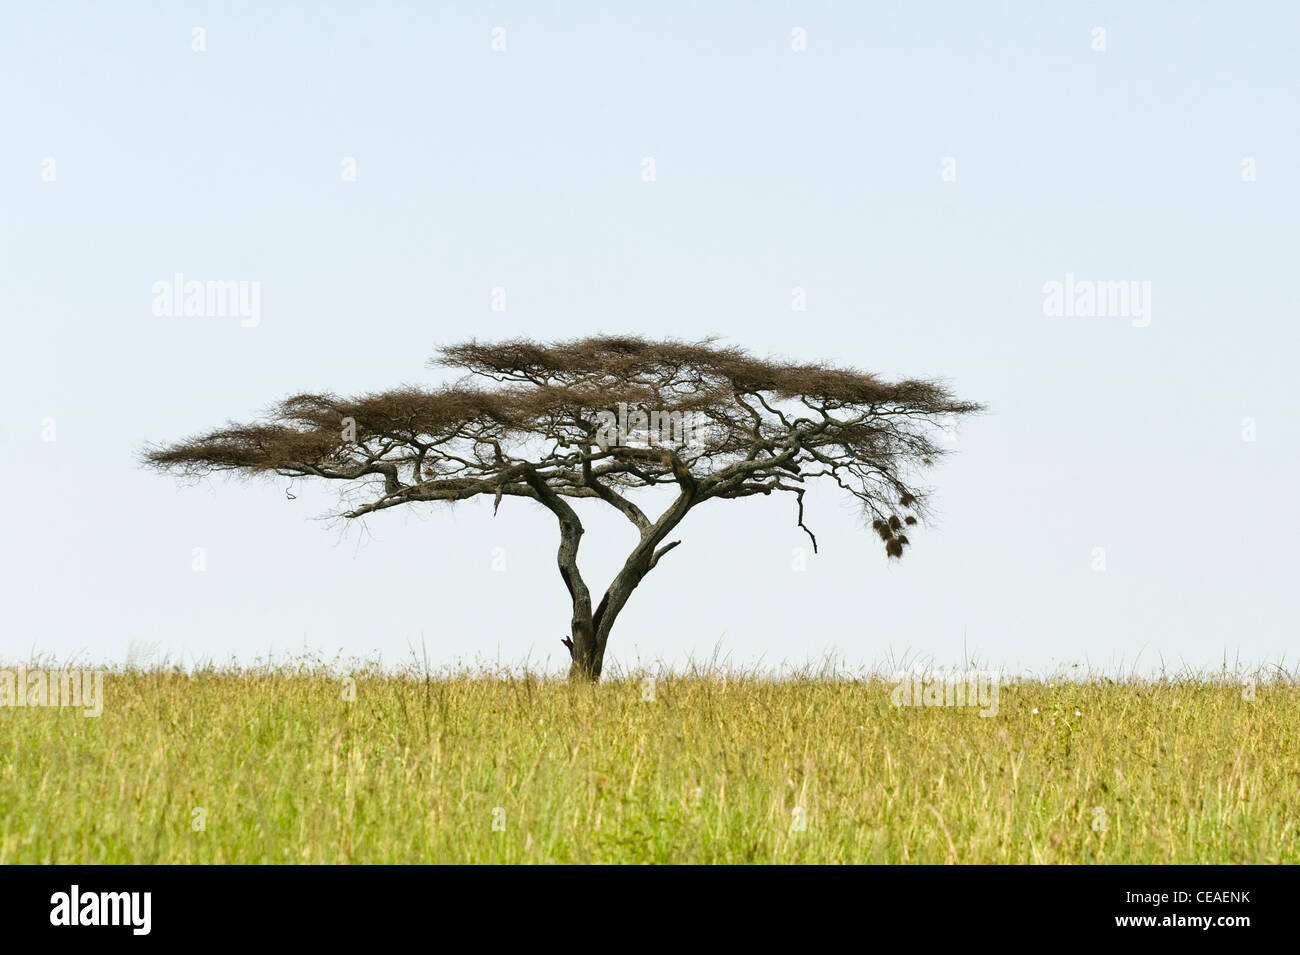 Serengeti gras plains with Umbrella Thorn Acacia (Acacia tortilis) at Seronera in Serengeti Tanzania - Stock Image